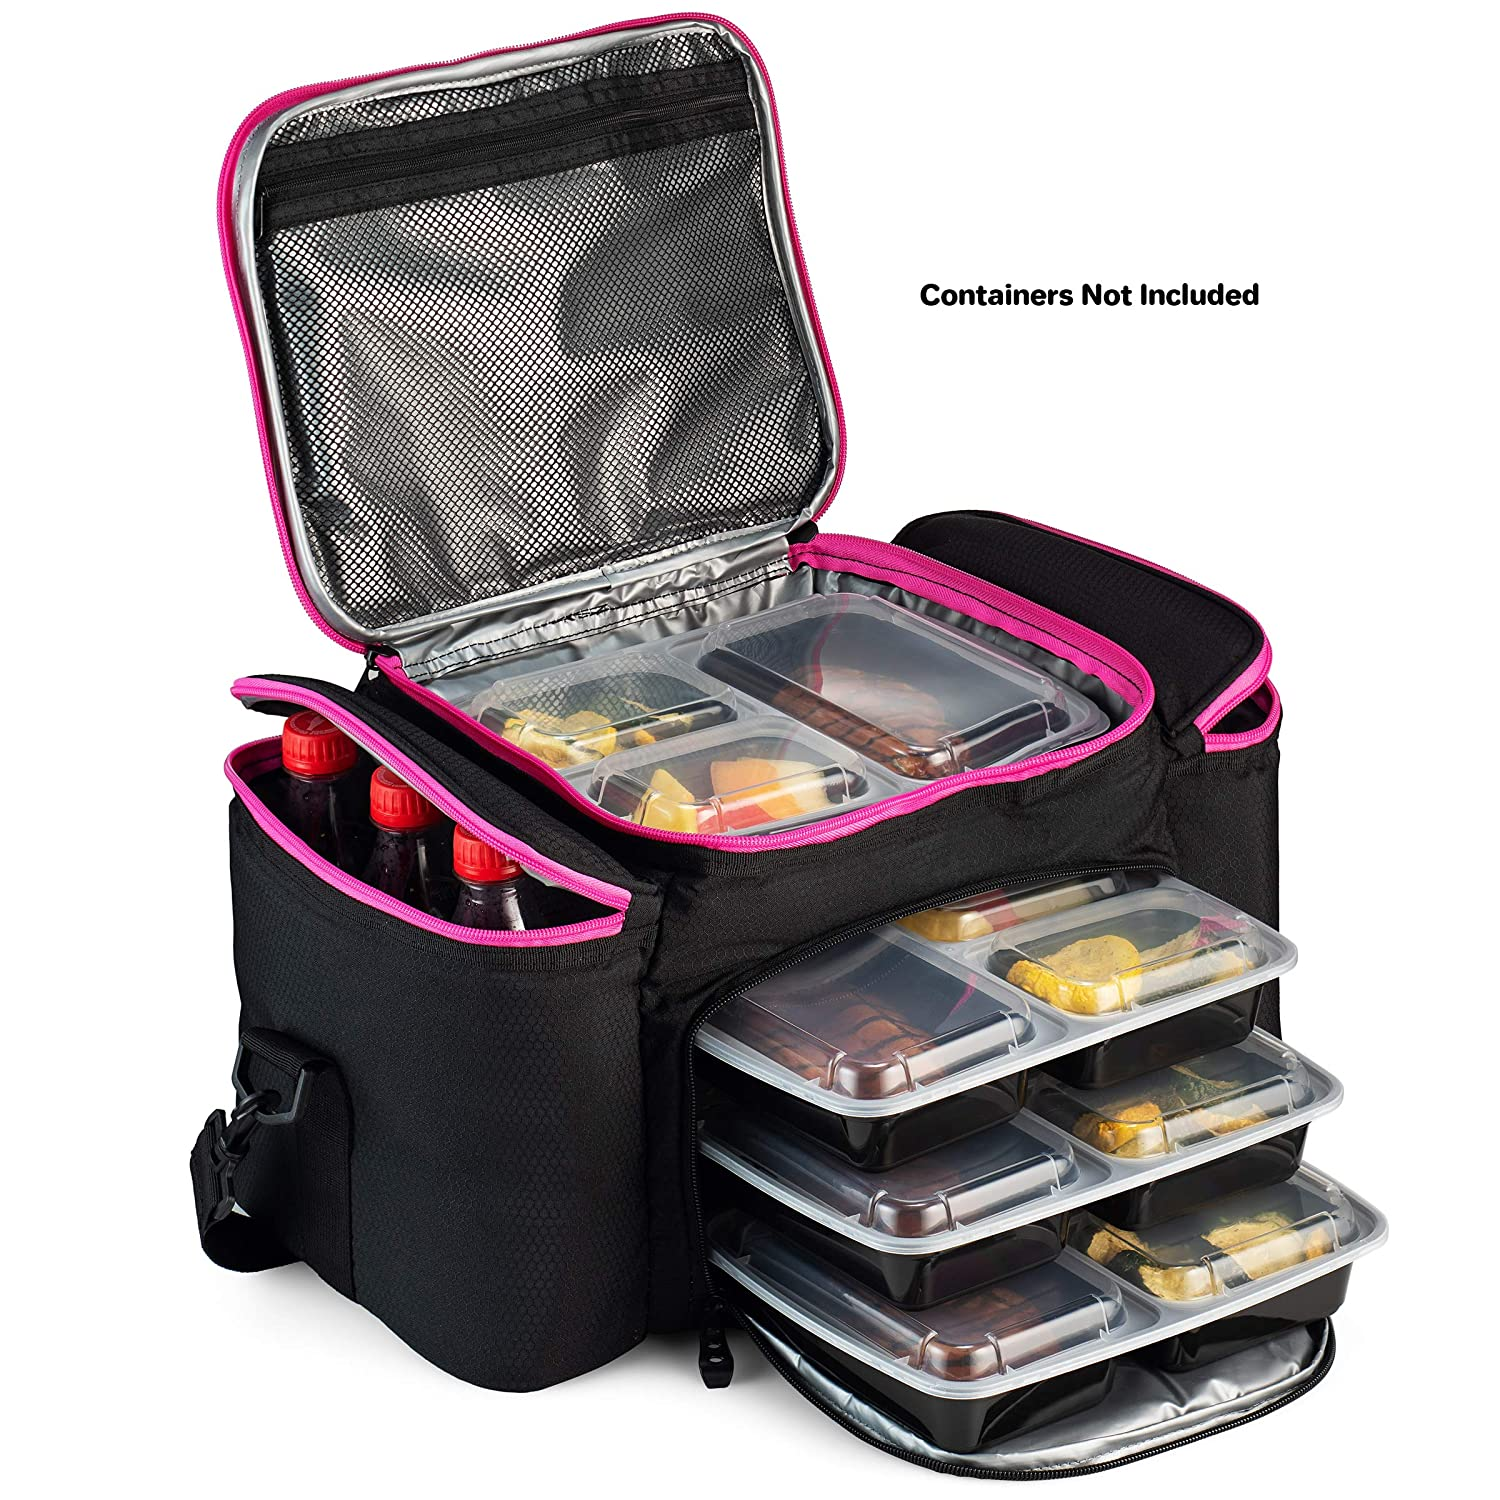 Cooler Bag insulated By Outdoorwares Large Capacity Bag Durable, Insulated Tote To Keep Foods And Drinks In The Right Temperature Good for Travel, Picnic, Beach Hiking, Camping ETC. Pink Zipper